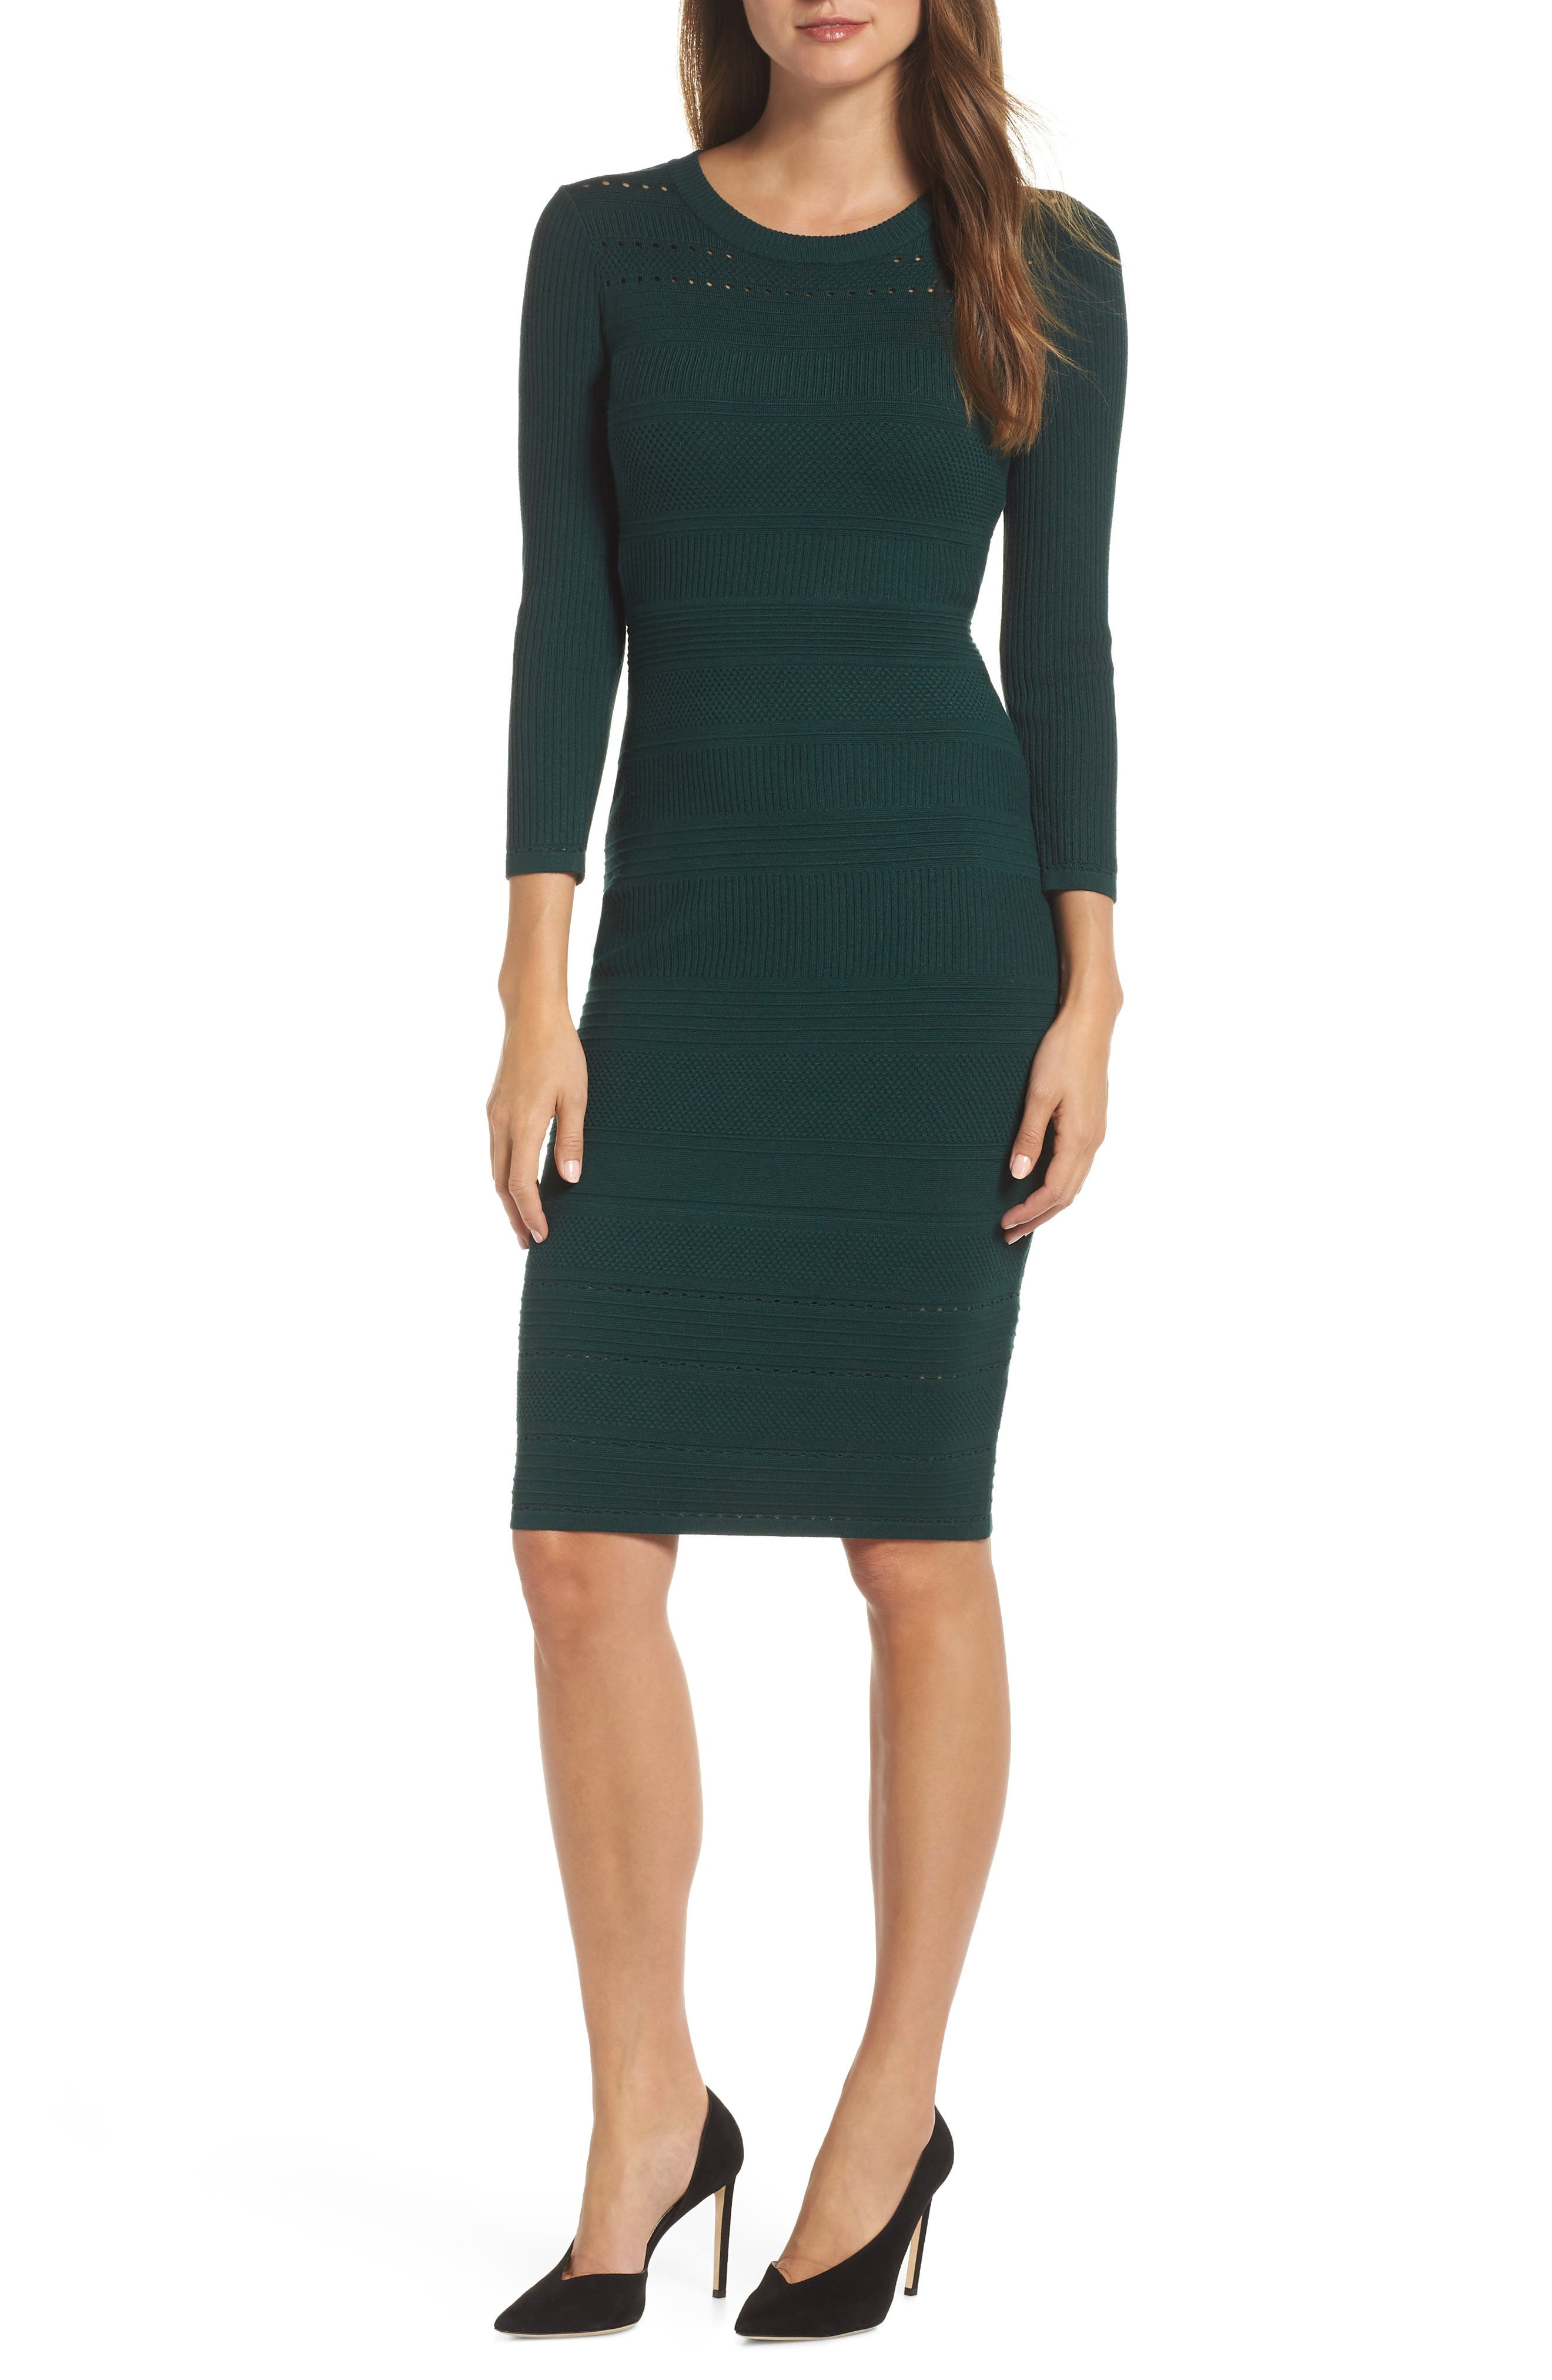 ELIZA J, Stitch Detail Sweater Dress, Main thumbnail 1, color, GREEN